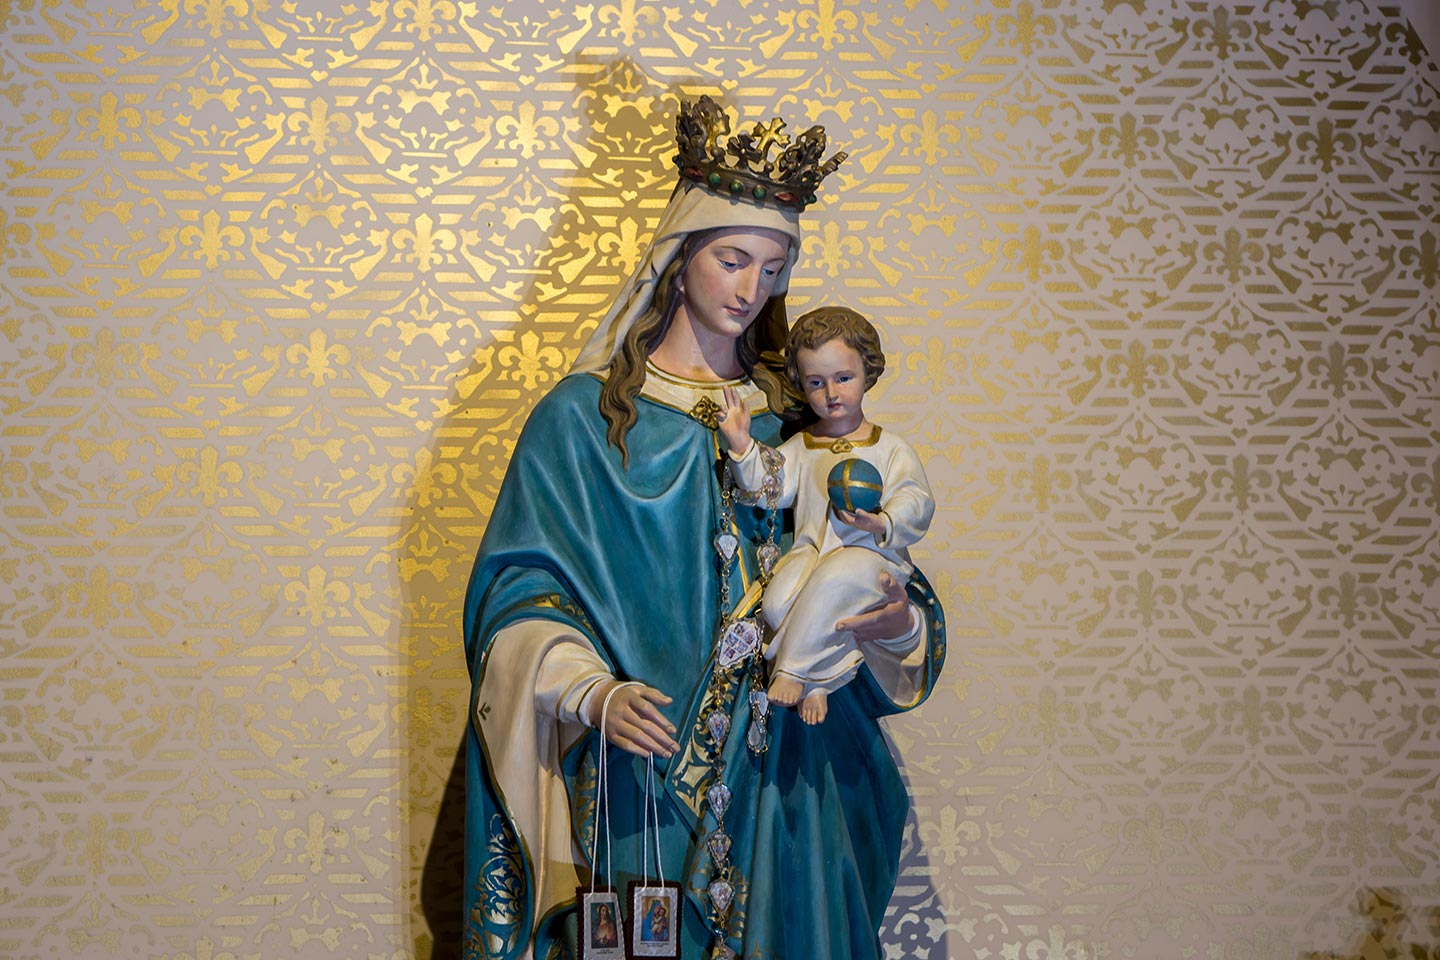 Our Lady of Mt. Carmel - Statue of Mary